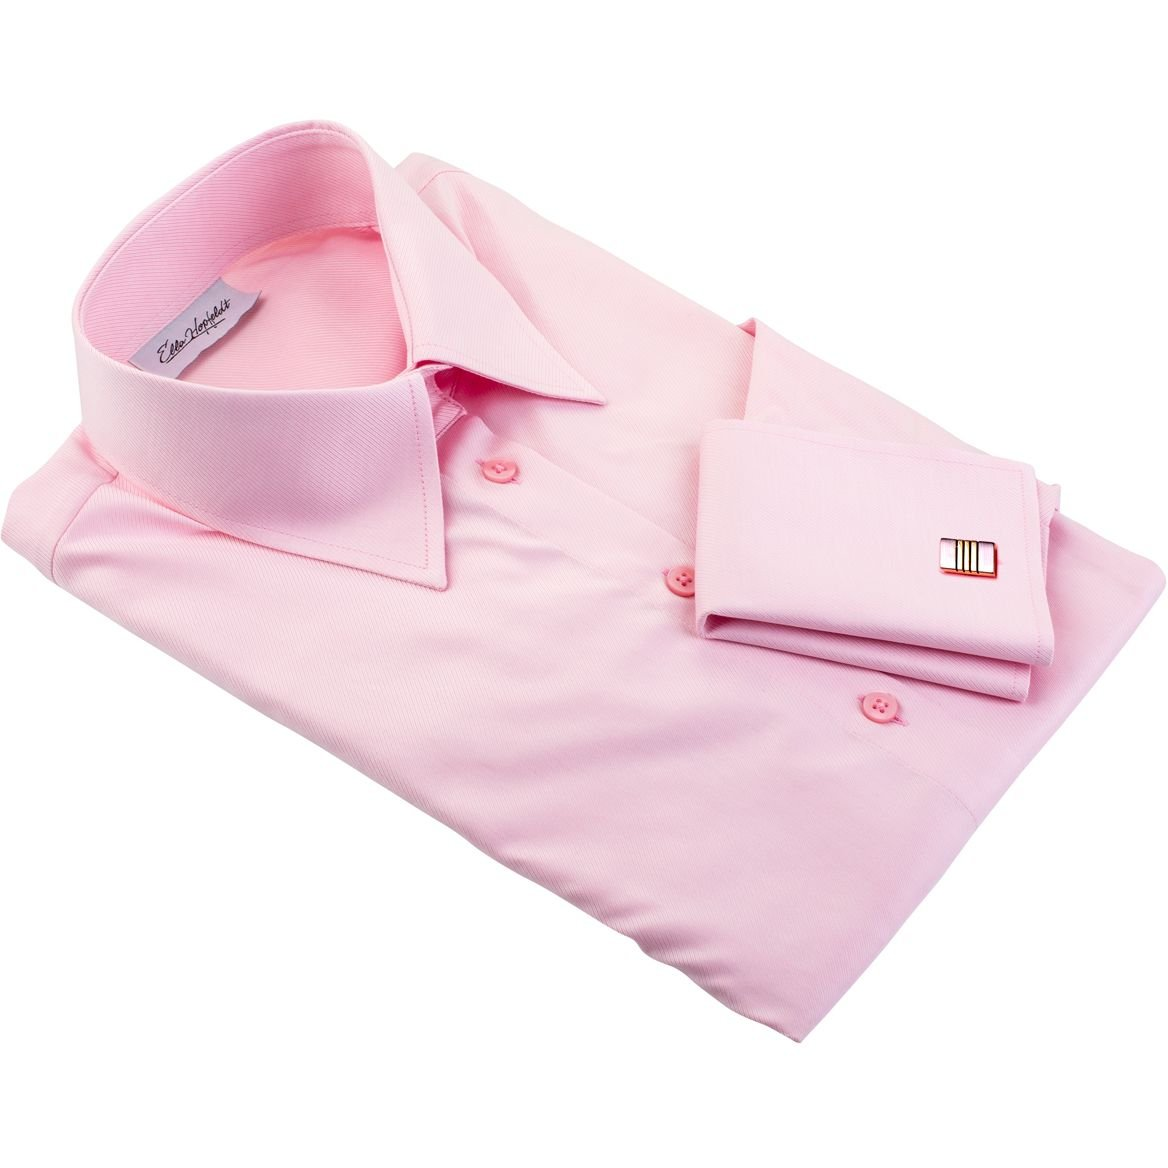 MUNICH pink dress shirt (last sizes: 32, 34, 40)